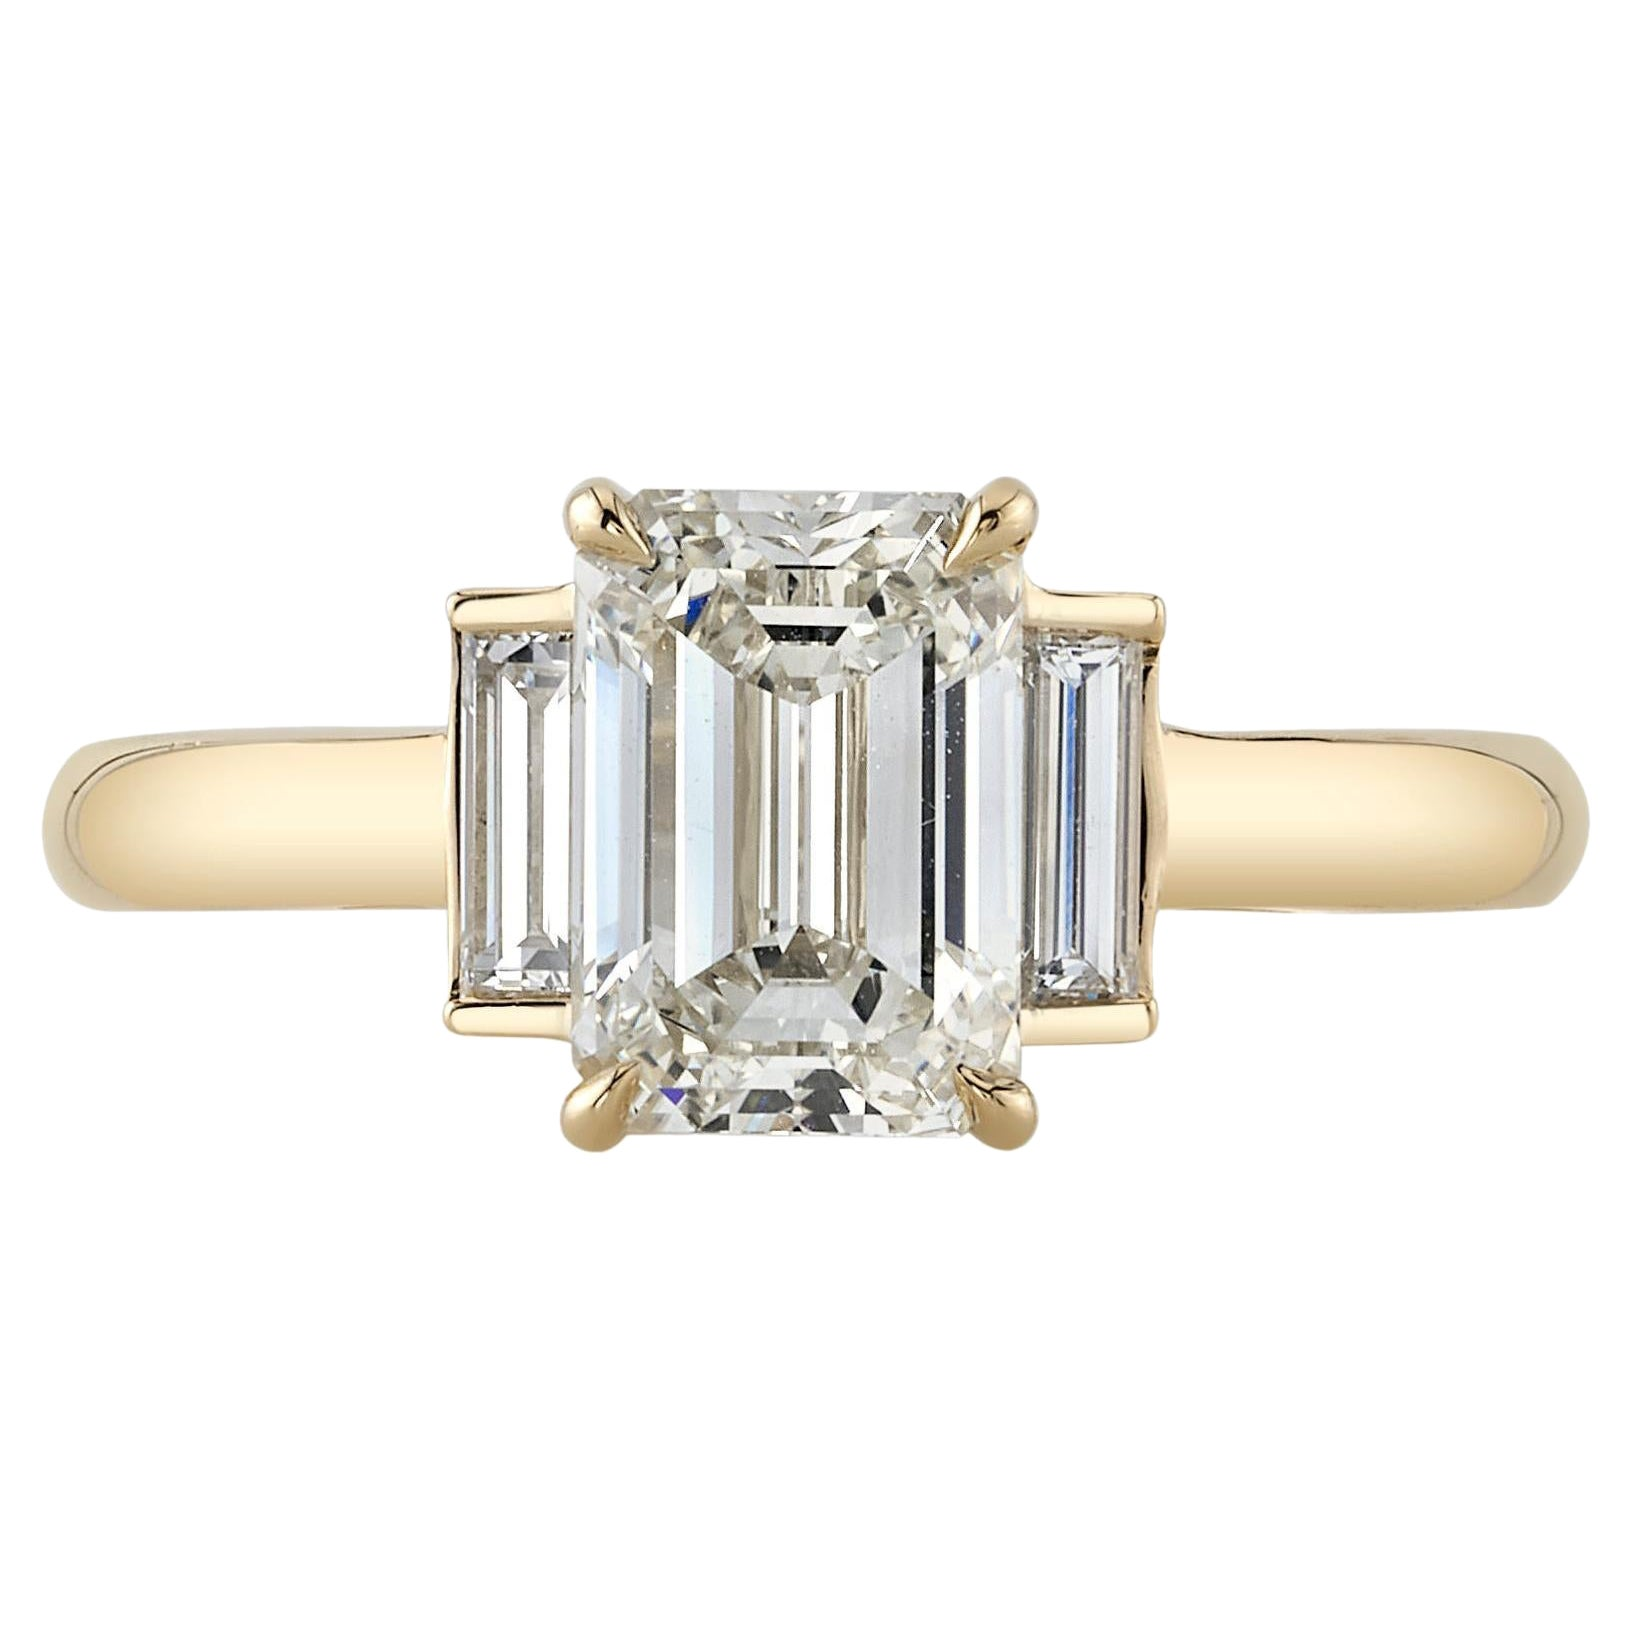 Handcrafted London Emerald Cut Diamond Ring by Single Stone